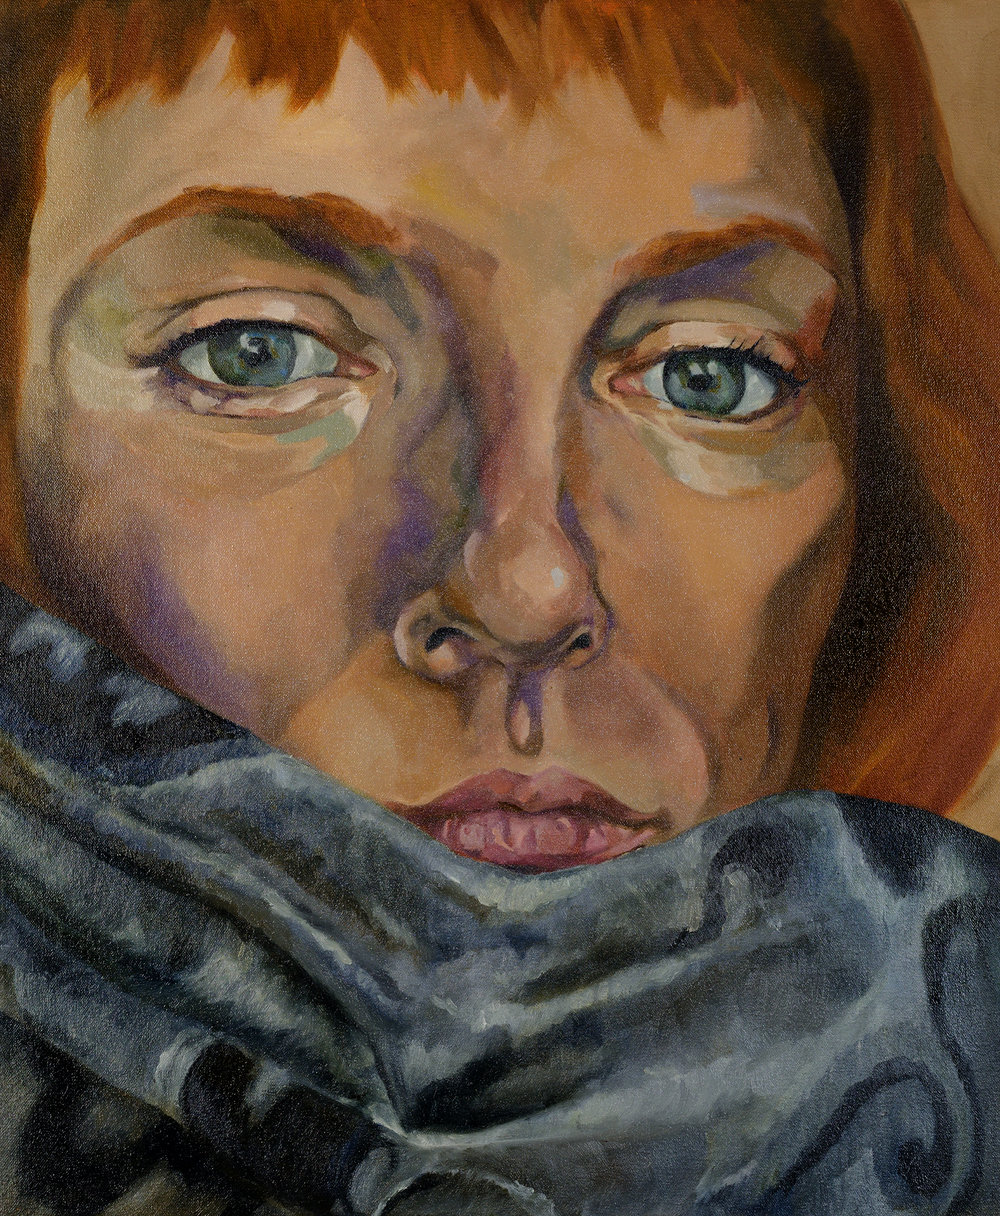 self portrait with Pashmina, Oil on Canvas, 2k max.jpg